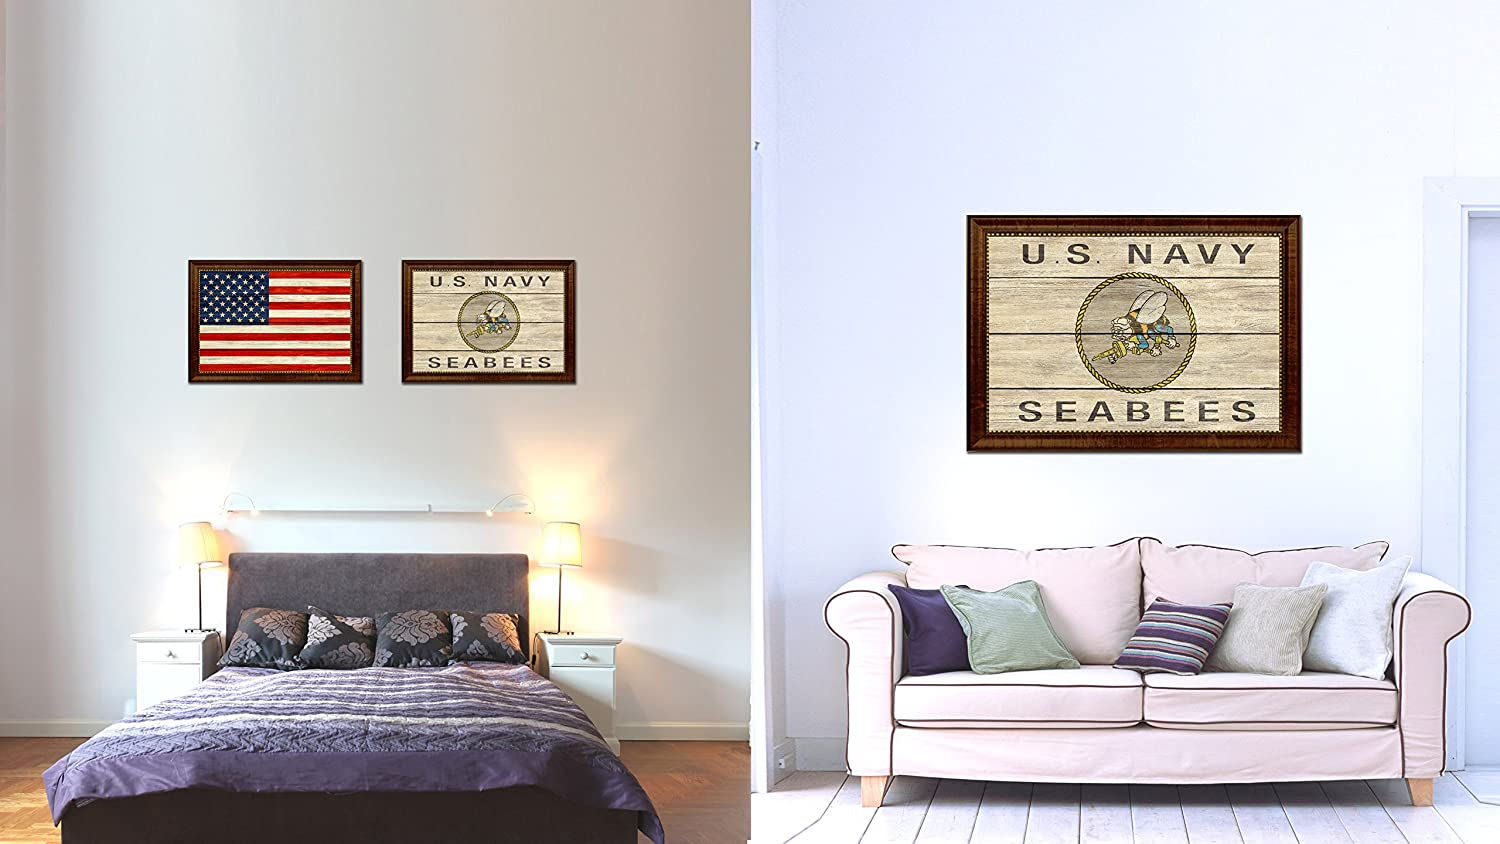 Amazon.com: US Navy Seabees Military Vintage Flag Brown Framed ...